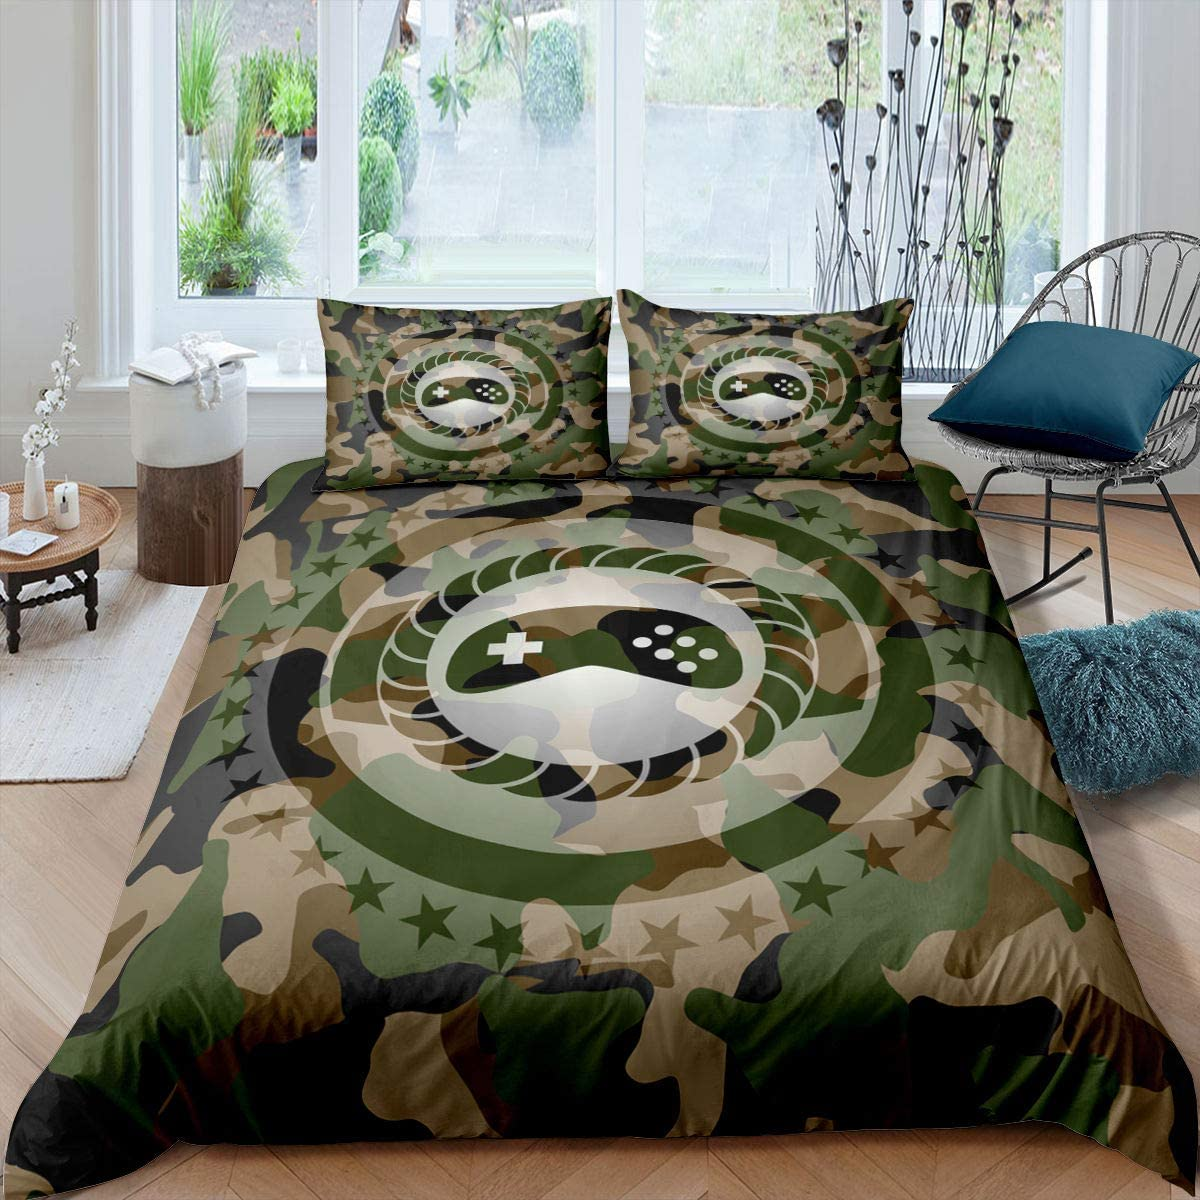 Camo Gamer Duvet Cover Set, Boys Teens Gamepad Comforter Cover Digital,Pixel Effect Modern Design Camouflage Kids Game Room Decorative Youth Bedding Set with 1 Pillow Sham,Twin Size, ArmyGreen